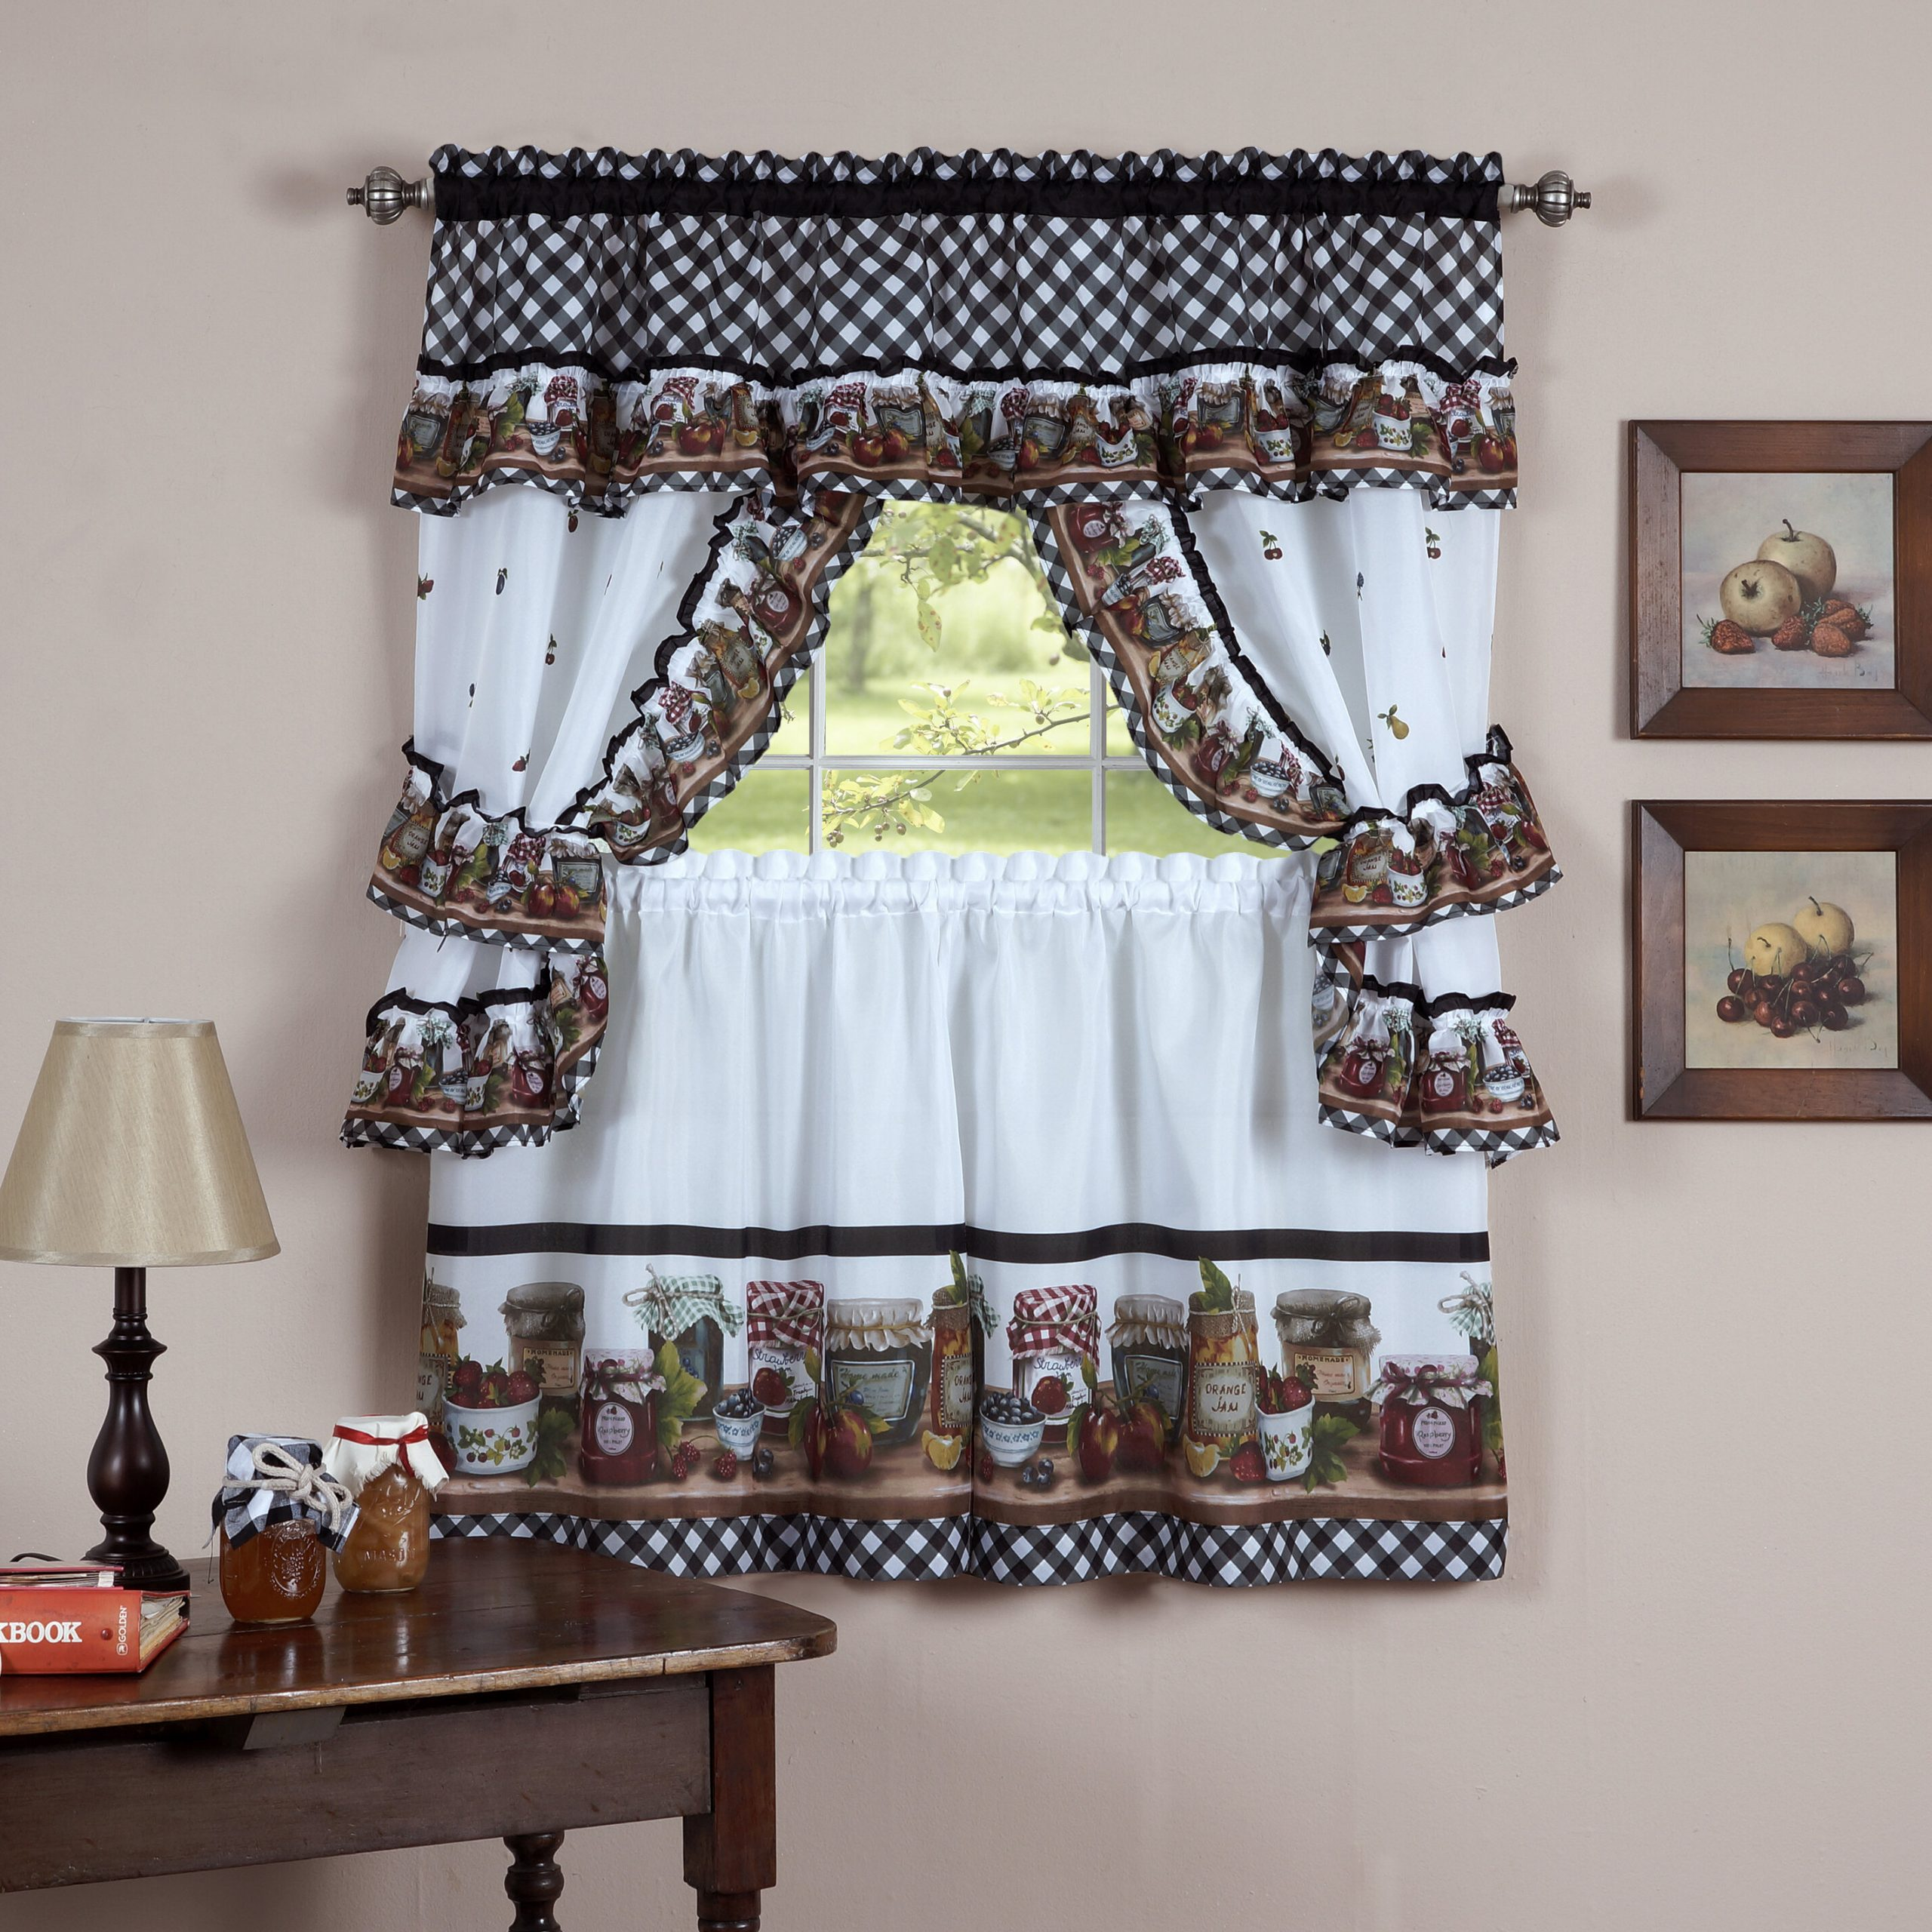 Guimauve Mason Jar Cottage Kitchen Window Treatment Set With Regard To Complete Cottage Curtain Sets With An Antique And Aubergine Grapvine Print (View 12 of 20)